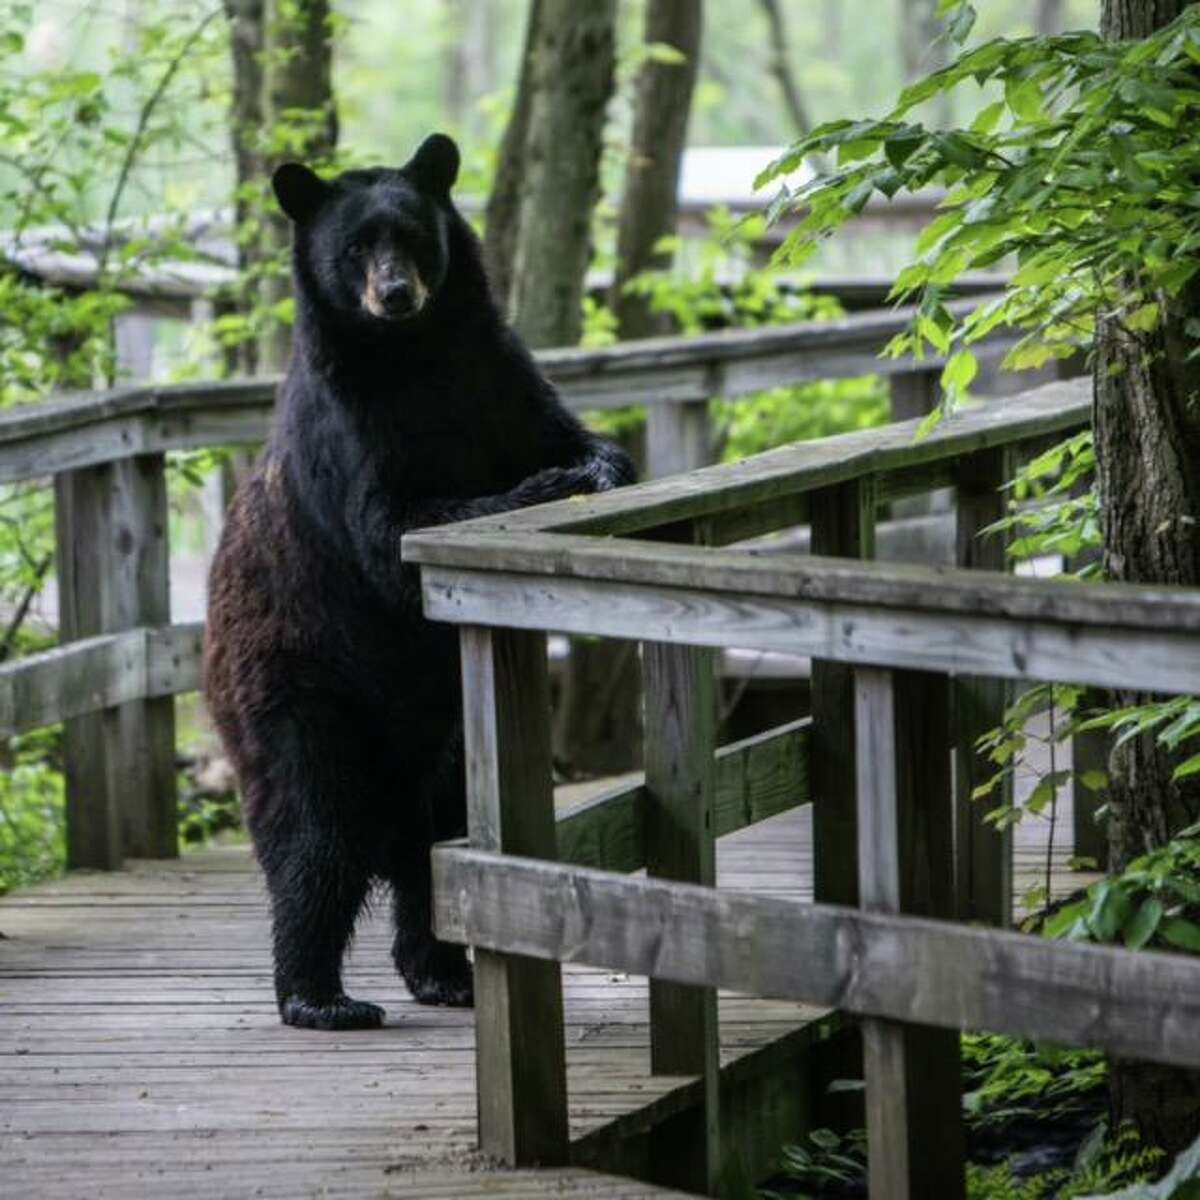 Photographer Chris Volpe photographed this bear in Edgewood Park near his home in New Haven, Conn. May 27, 2020.